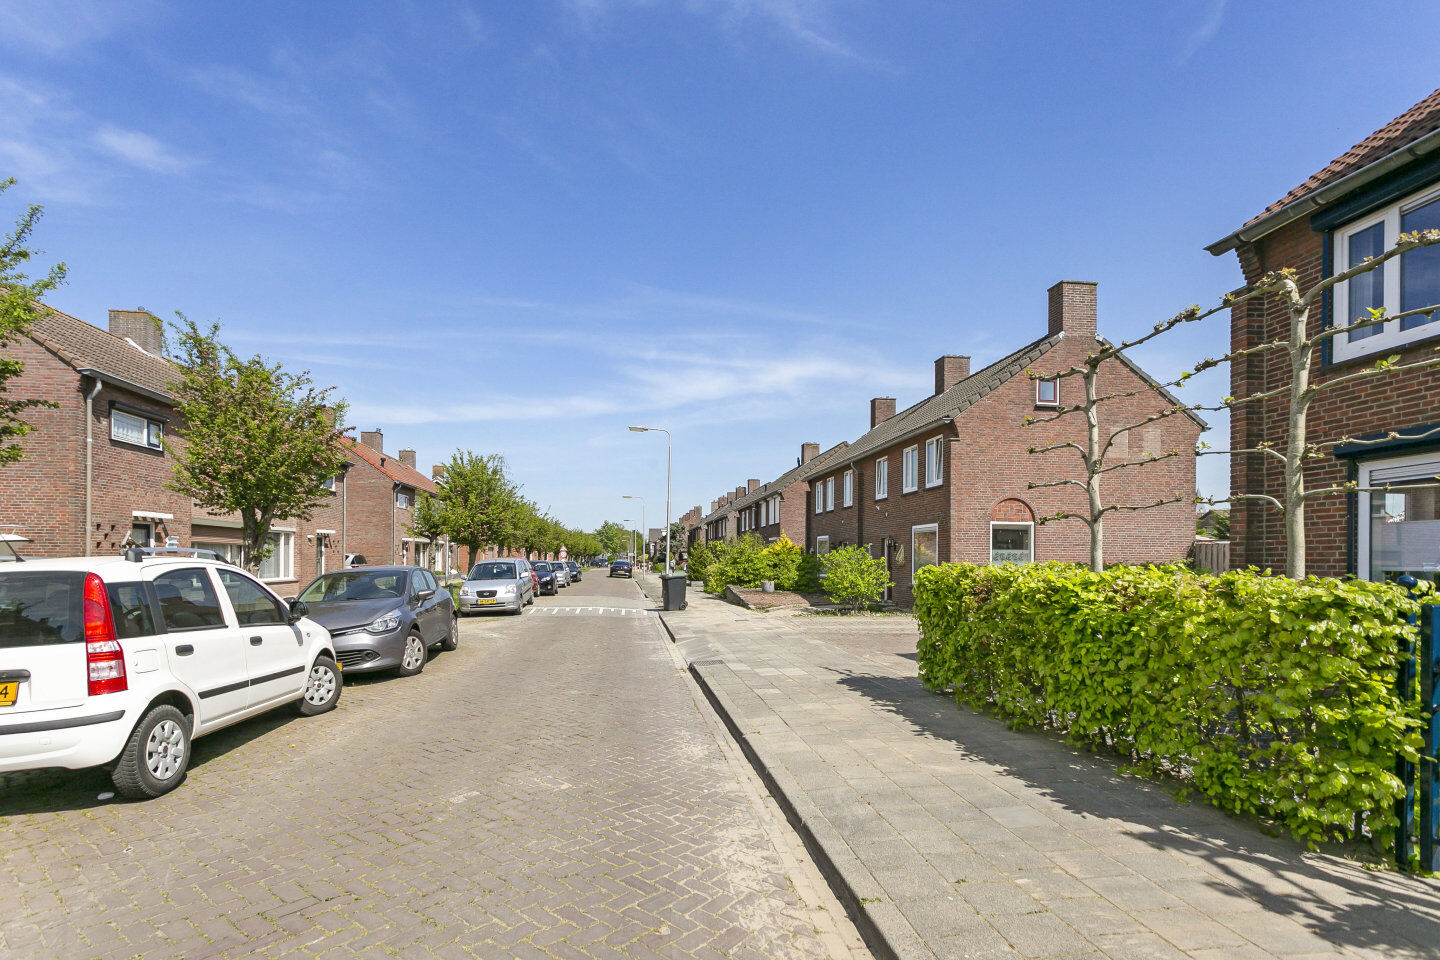 26583-philips_willemstraat_29-dinteloord-3710185293